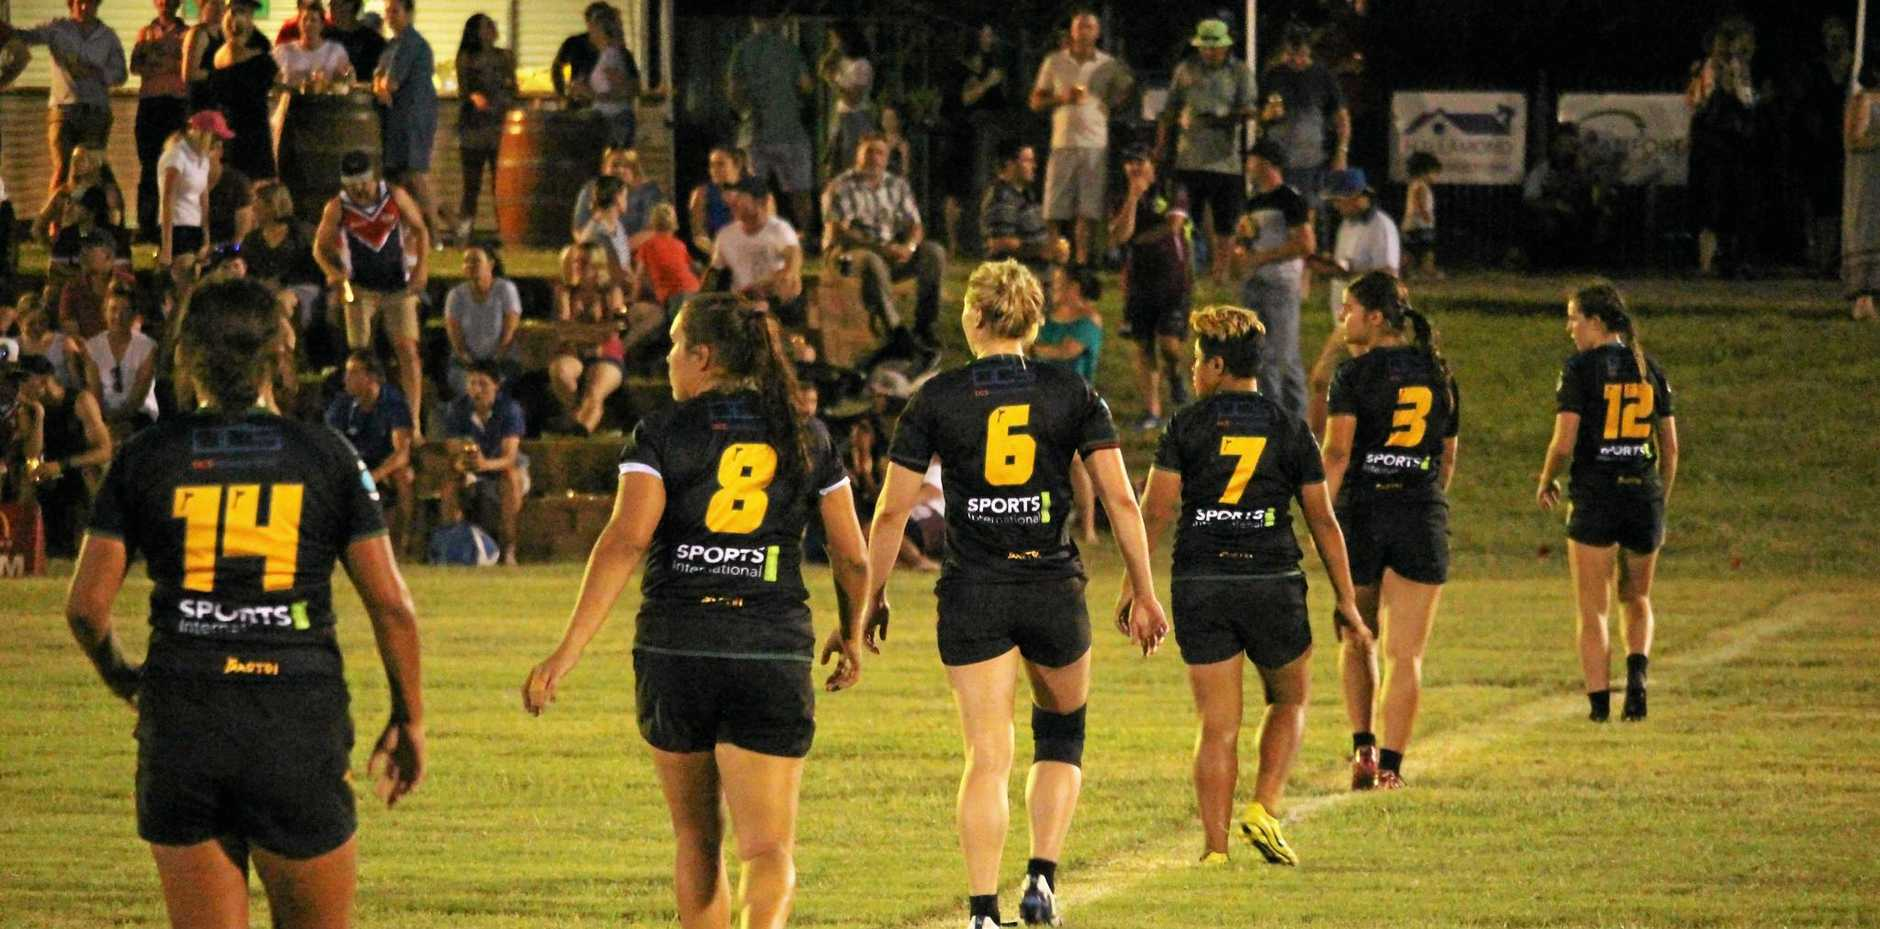 IMPOSING SIGHT: Tribe 7's physicality proved too strong against UQ in the grand final match on Saturday night.